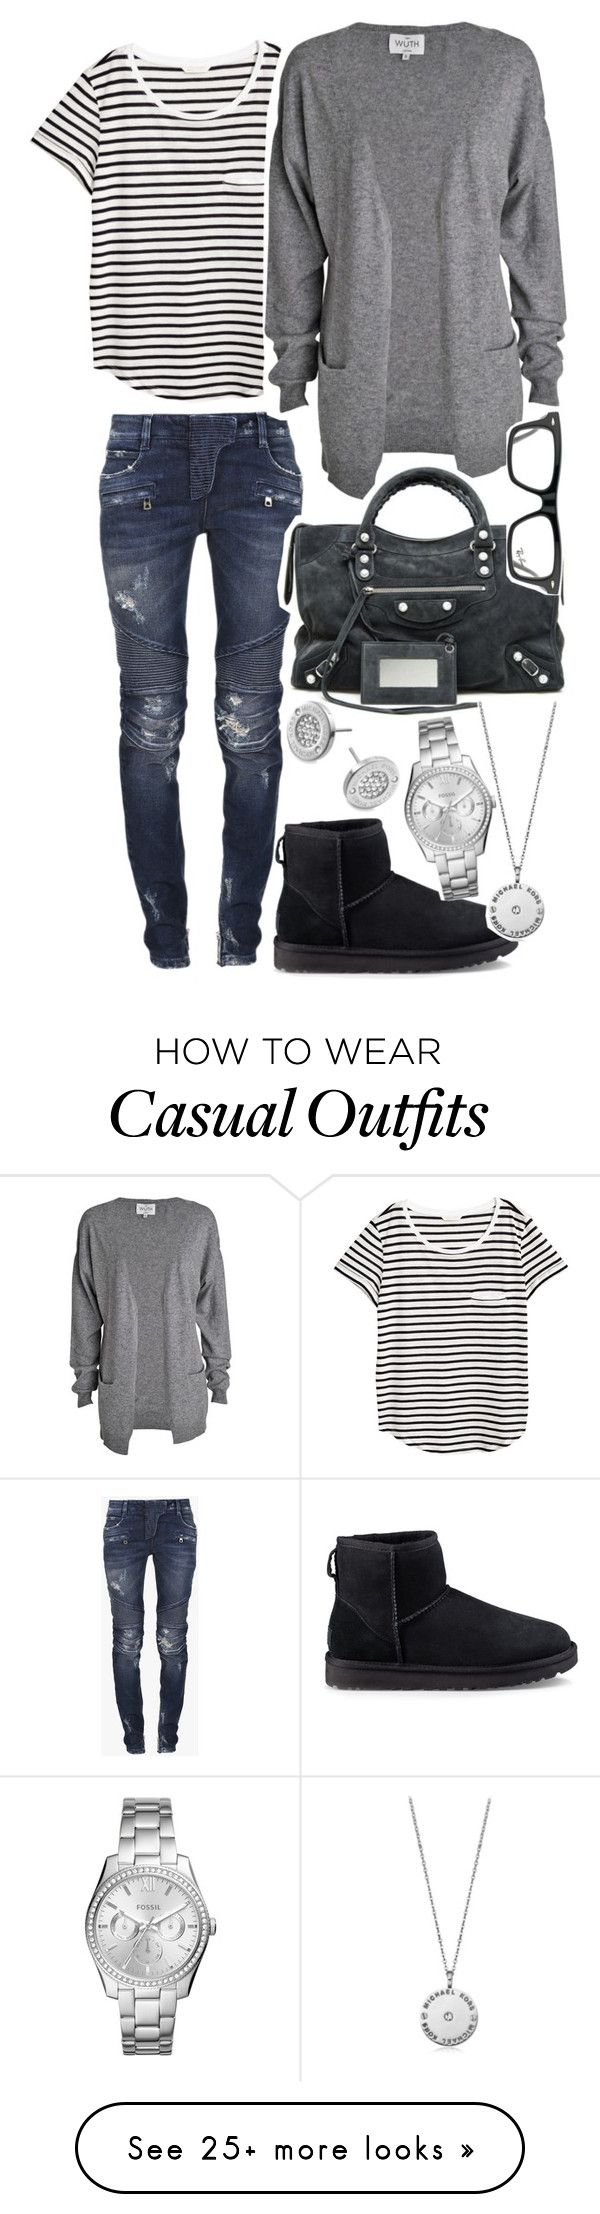 """oootd / office outfit of the day / casual"" by lajuliaw on Polyvore featuring Balmain, H&M, UGG, Balenciaga, FOSSIL, Michael Kors and Ray-Ban"